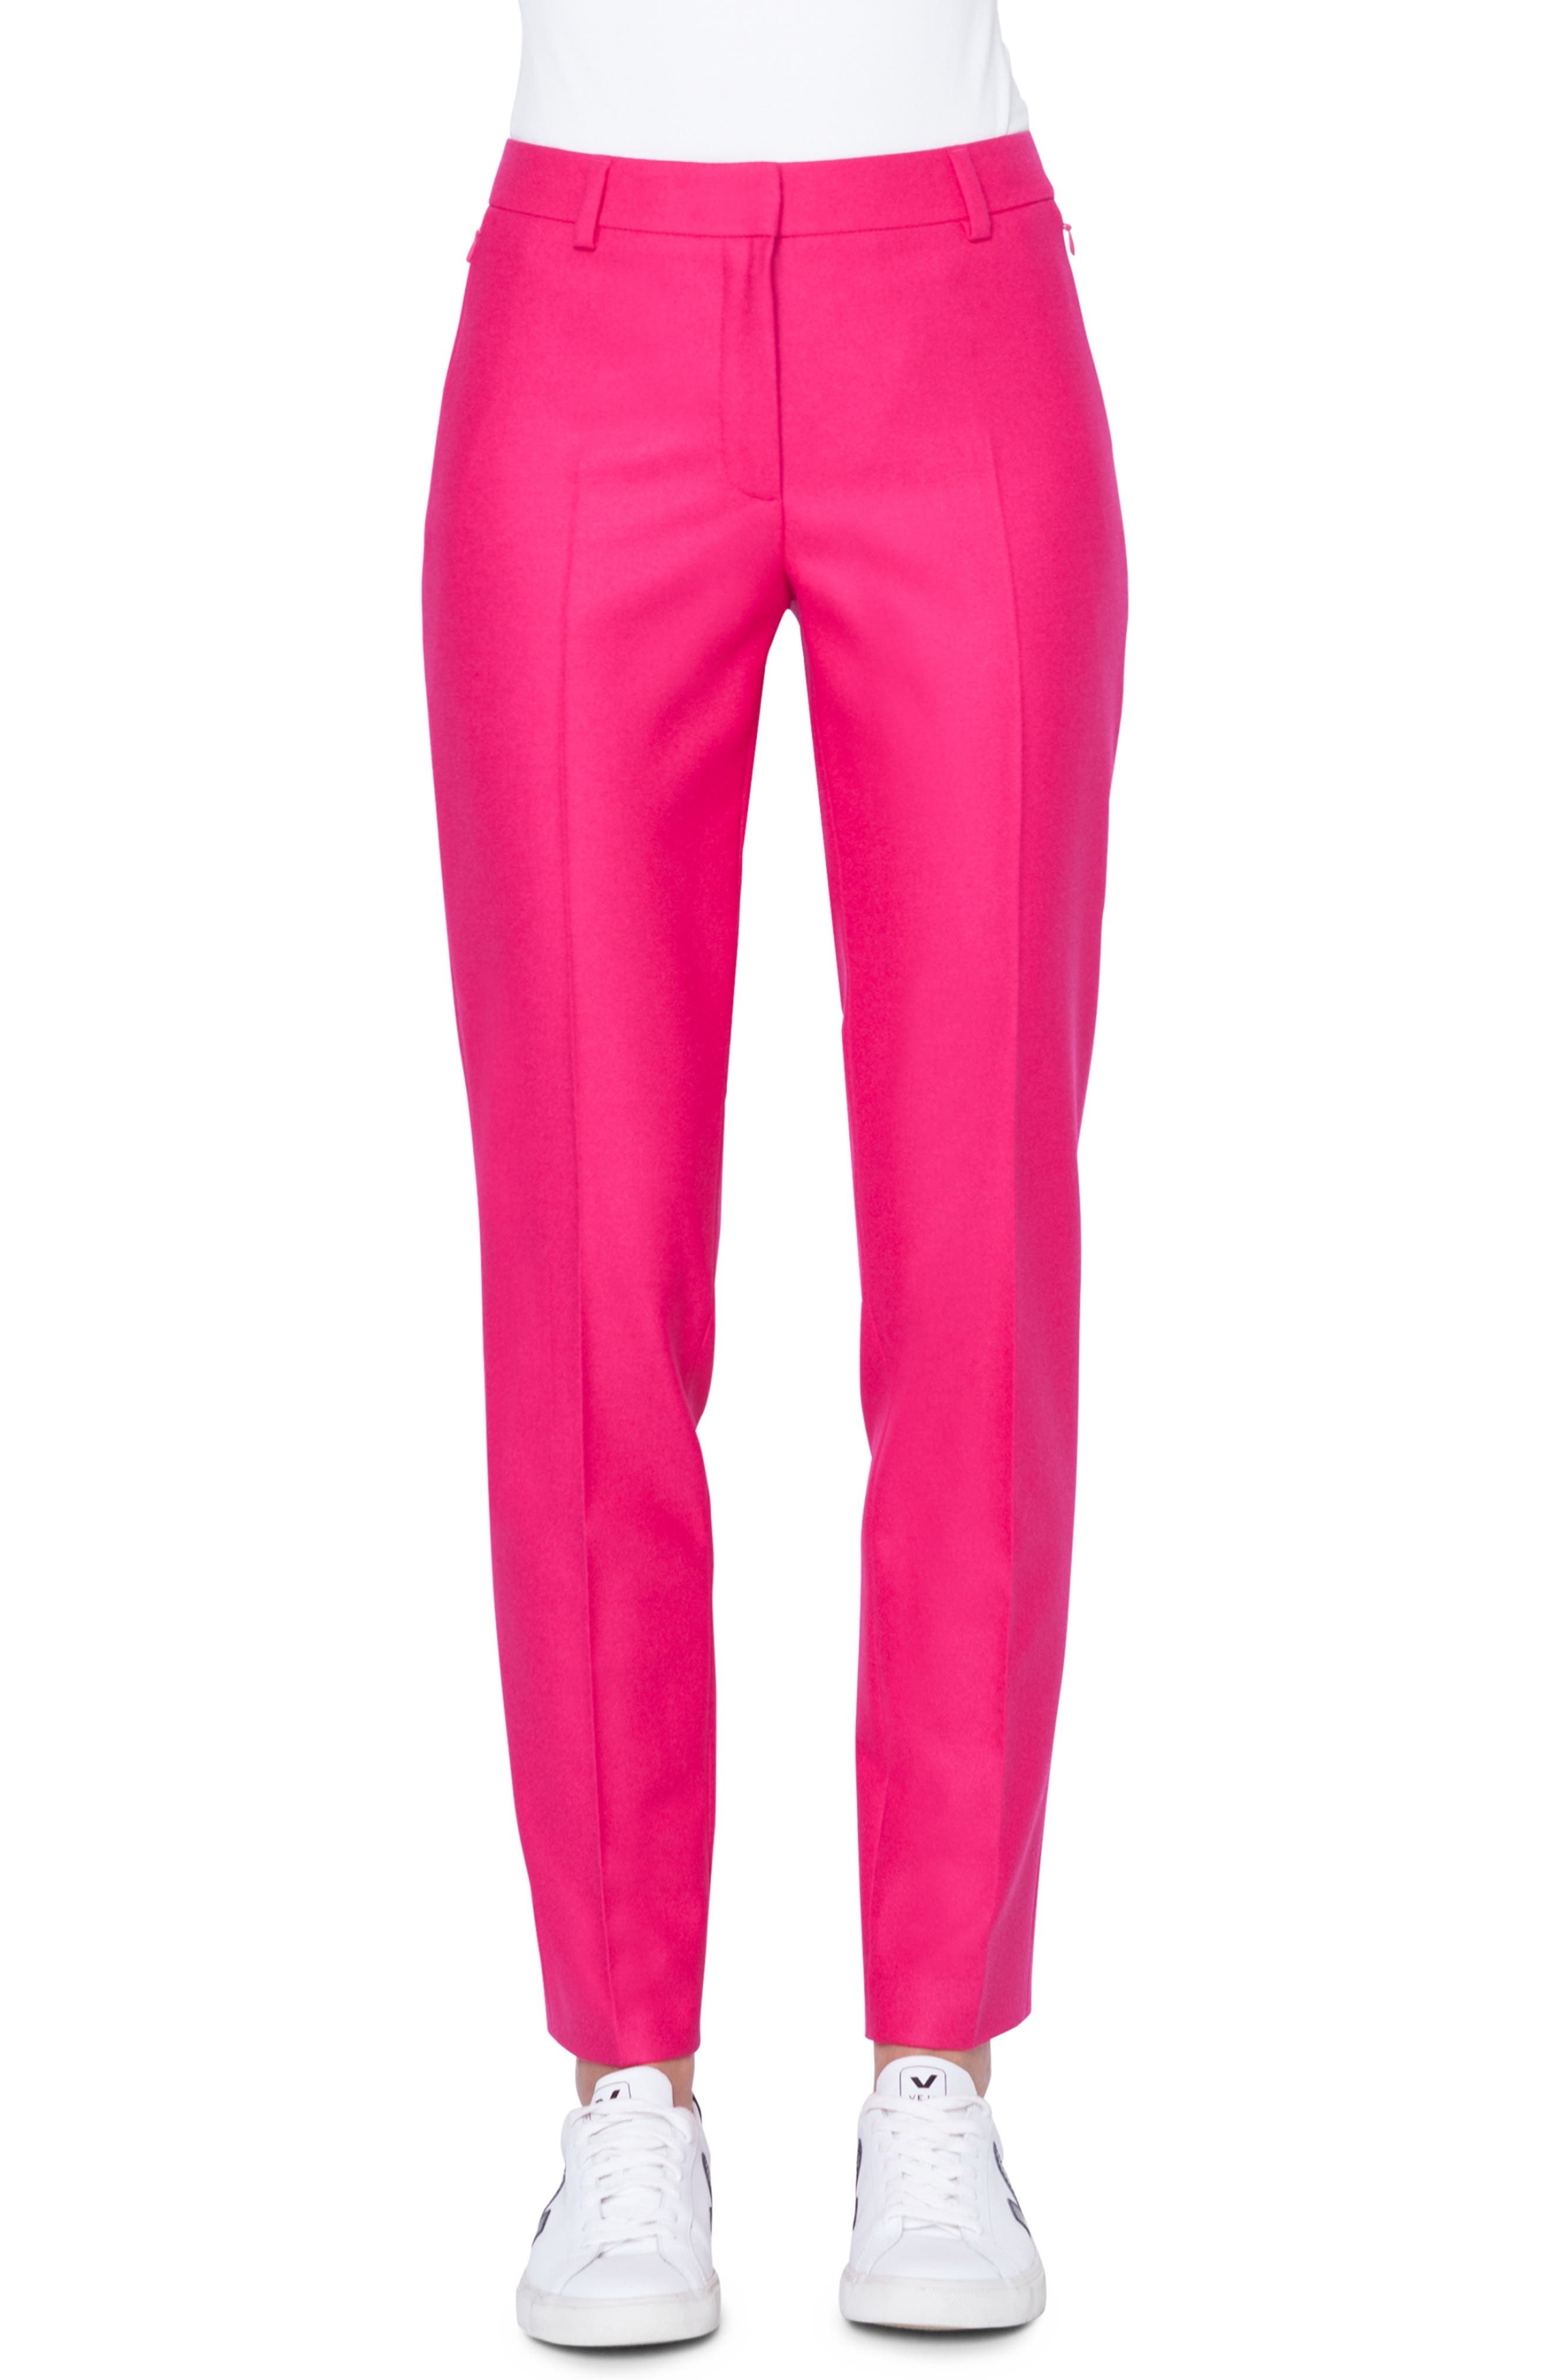 Melvin Stretch Wool Flannel Pants,                             Main thumbnail 1, color,                             067 PINK